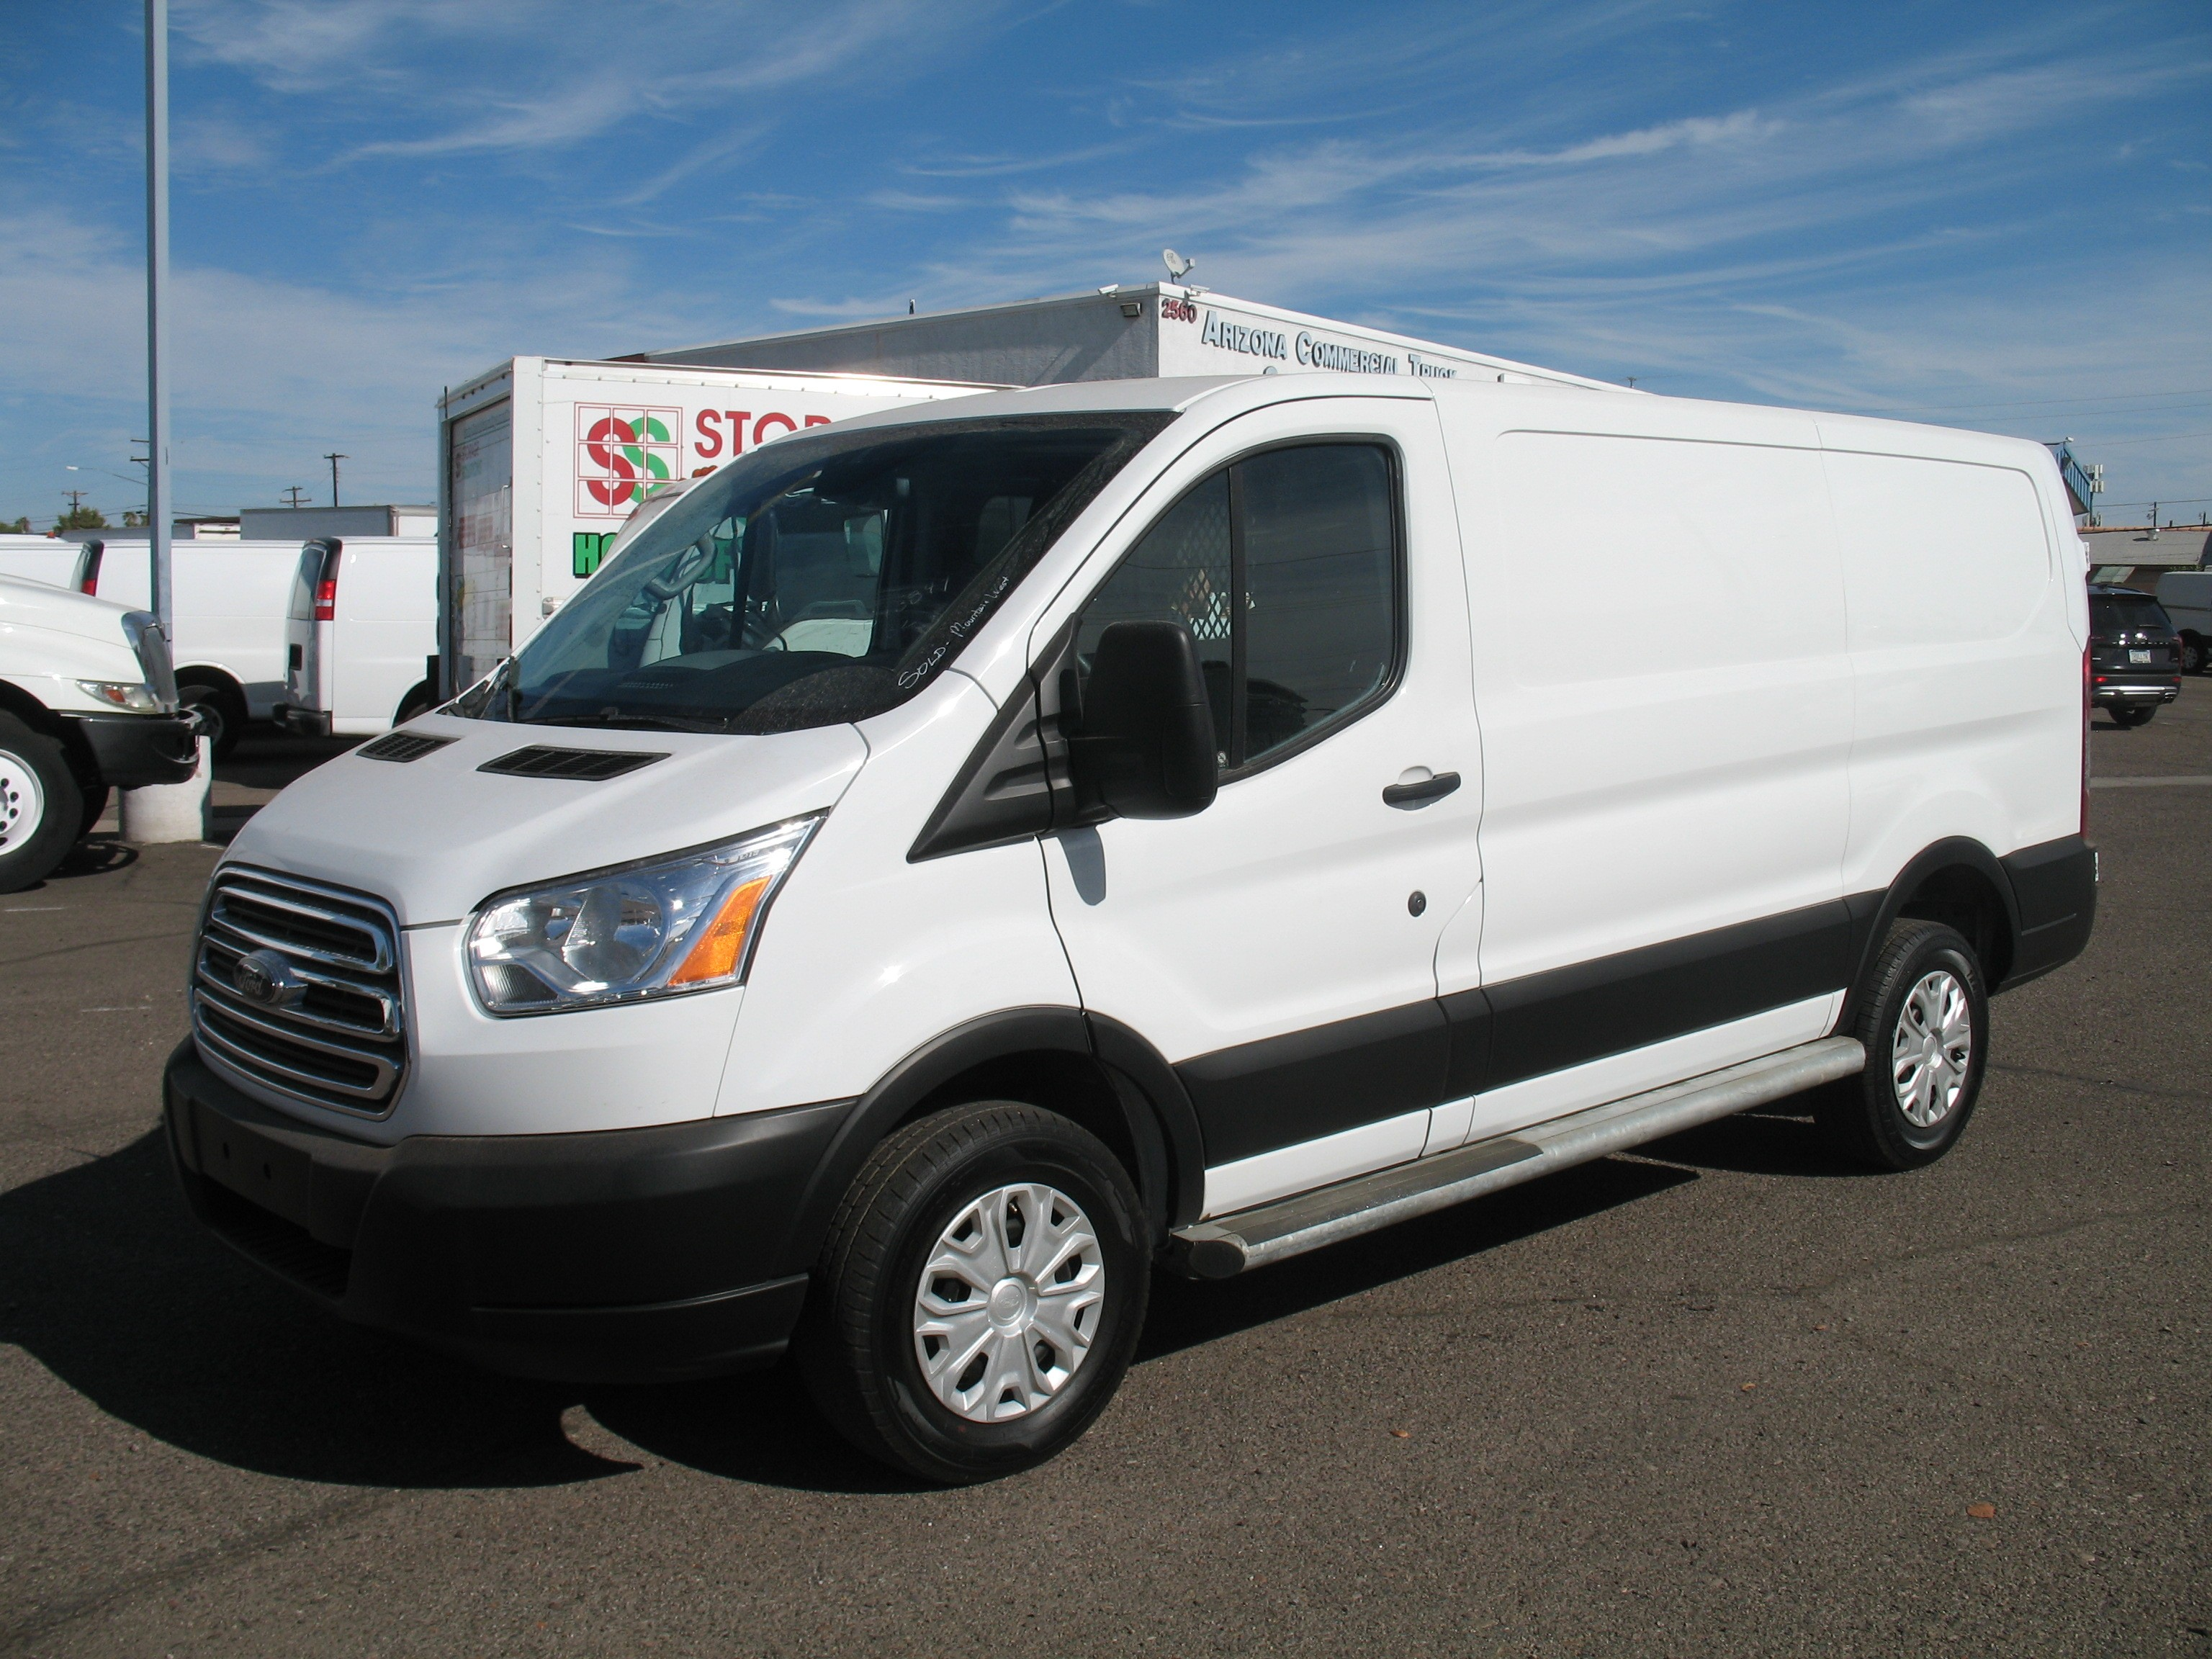 Used, 2019, Ford, TRANSIT T-250, Van Trucks